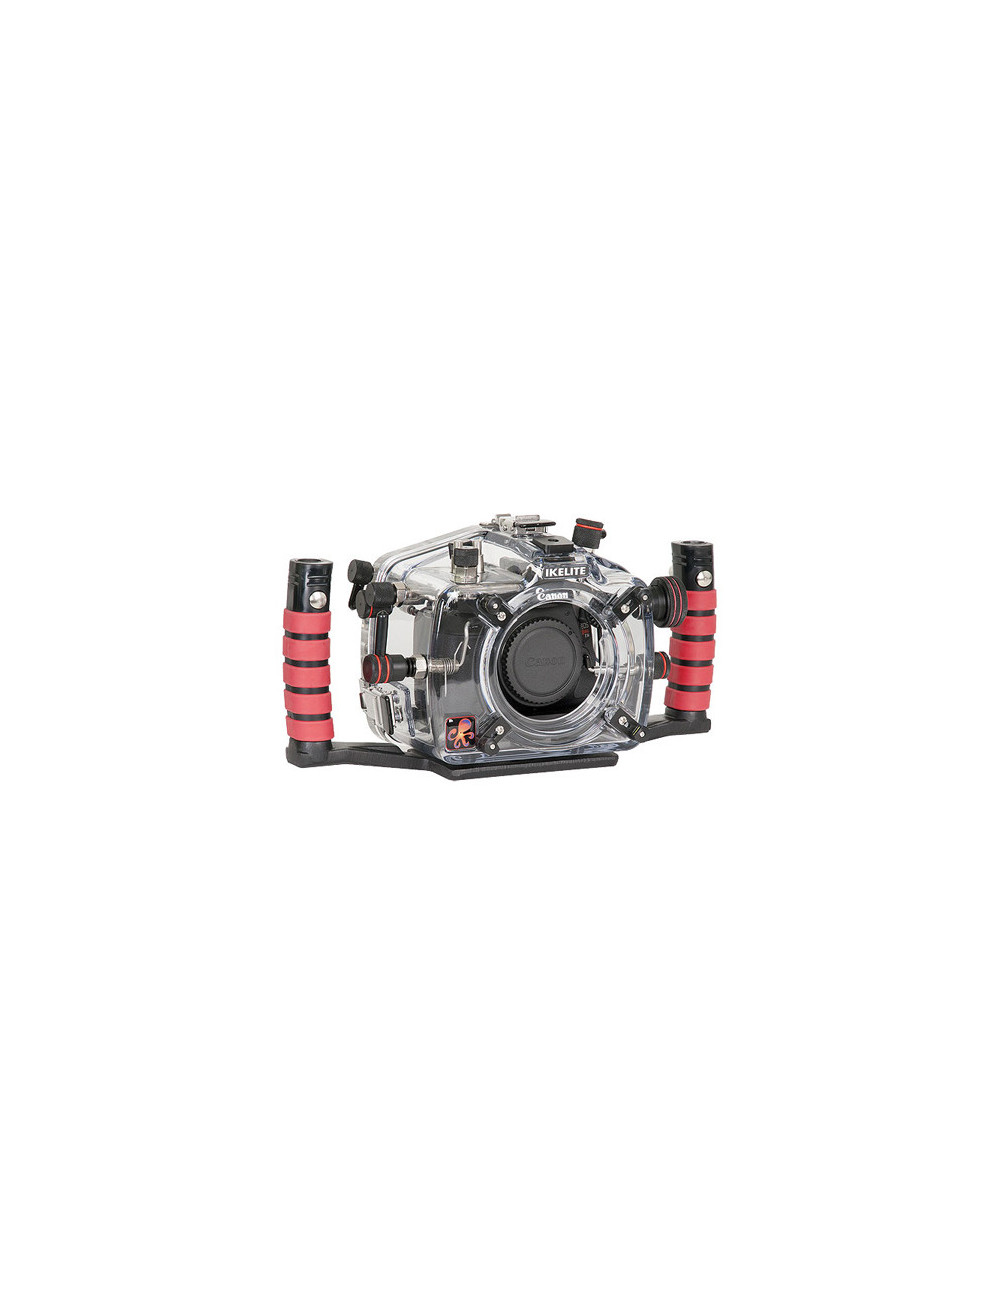 The Ikelite DSLR housing is a seamless blend of functionality, lighting  integration, durability and waterproof integrity